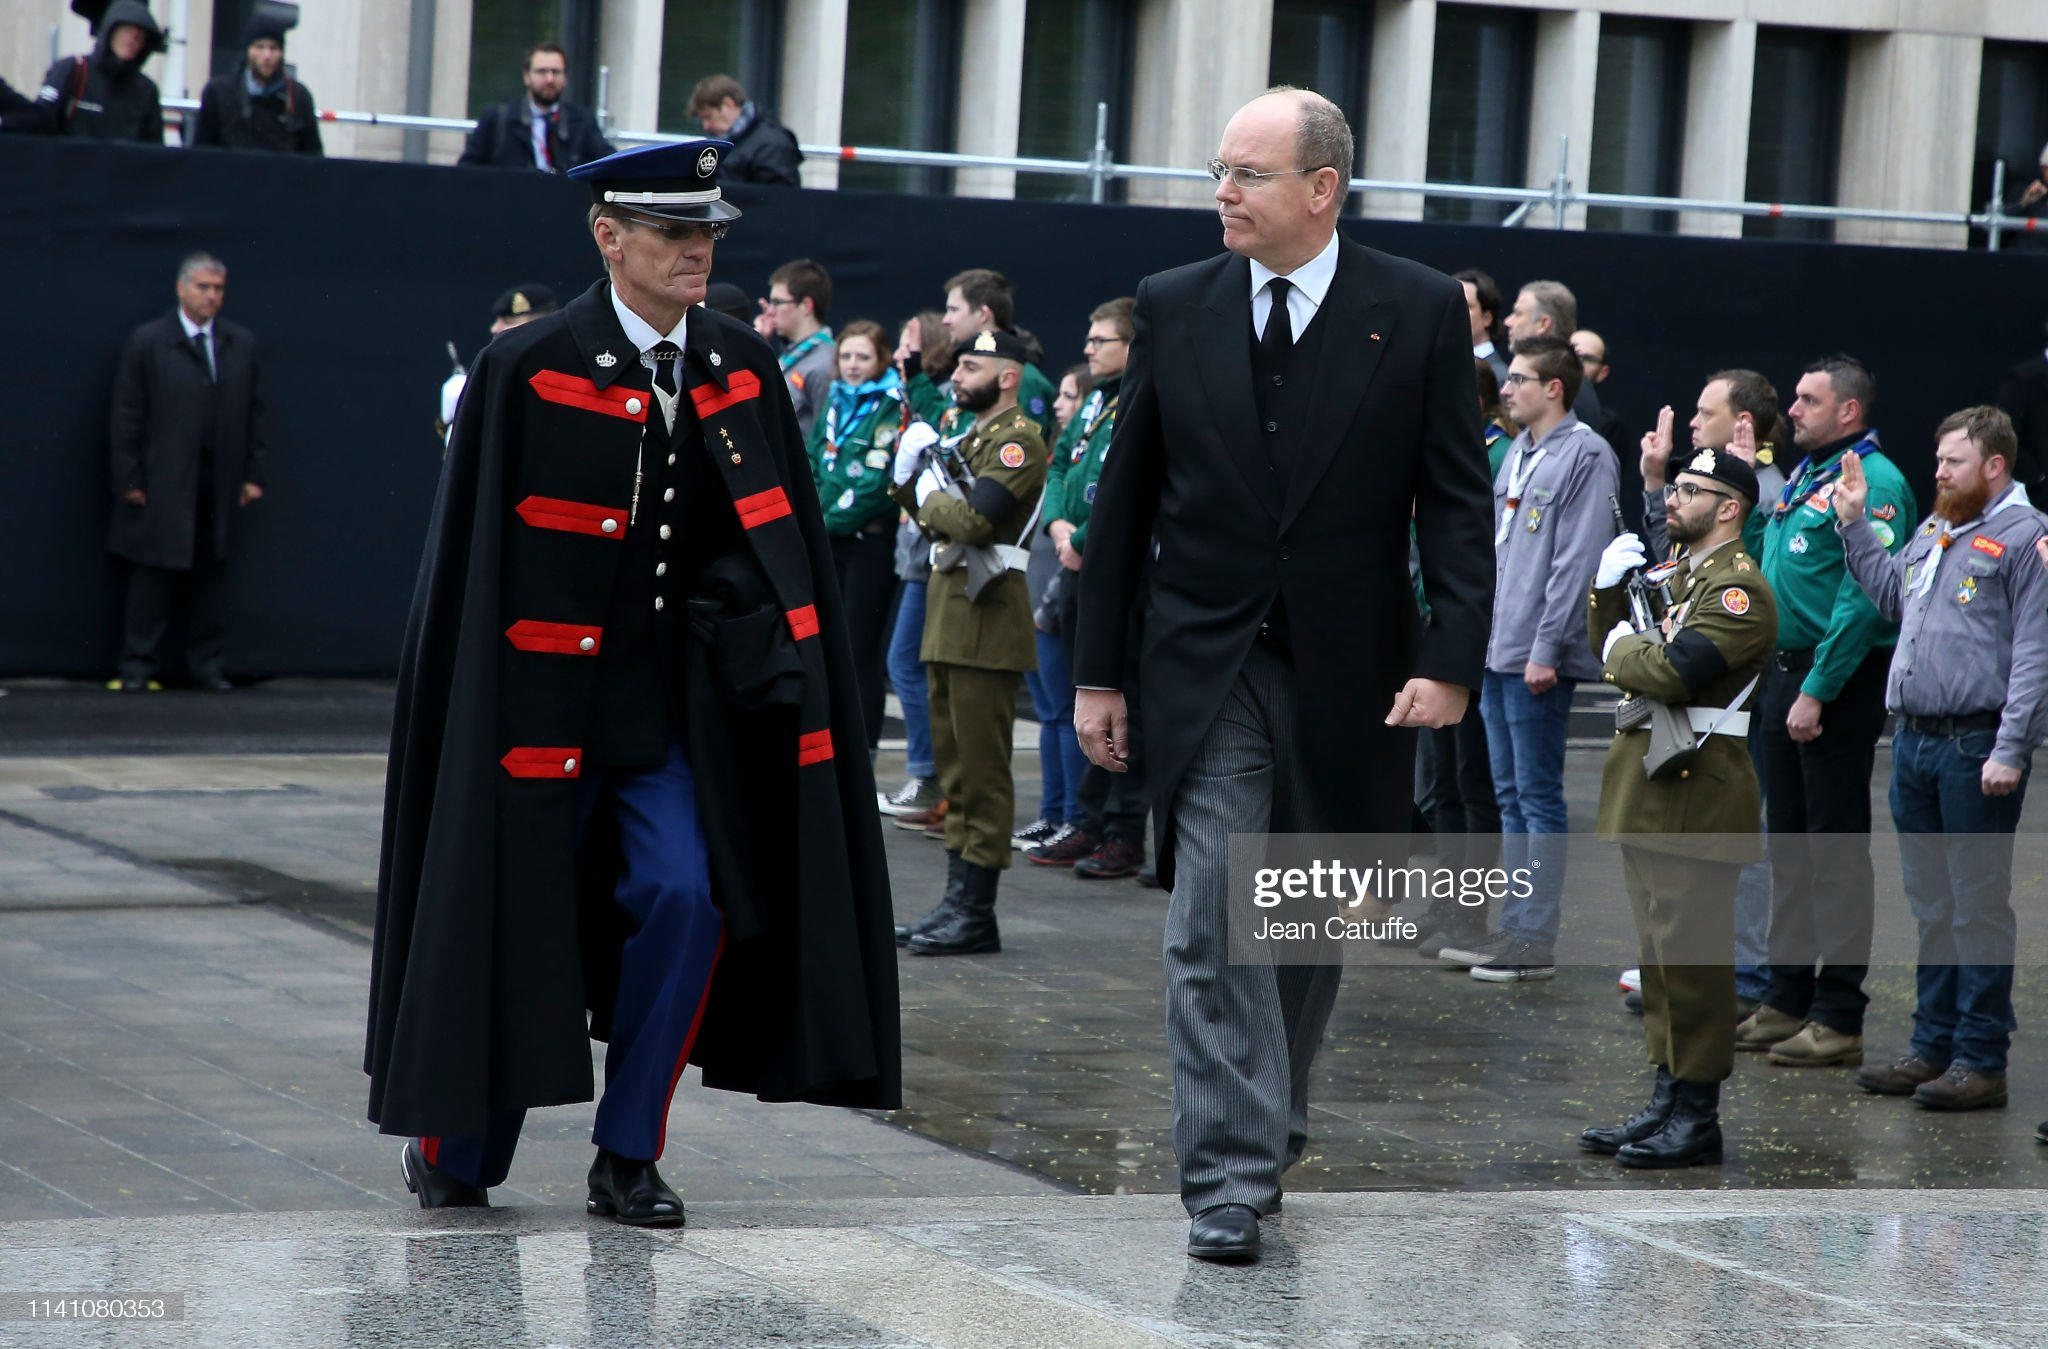 Похороны Великого Герцога Жана https://media.gettyimages.com/photos/prince-albert-ii-of-monaco-arrives-for-the-funeral-of-grand-duke-jean-picture-id1141080353?s=2048x2048